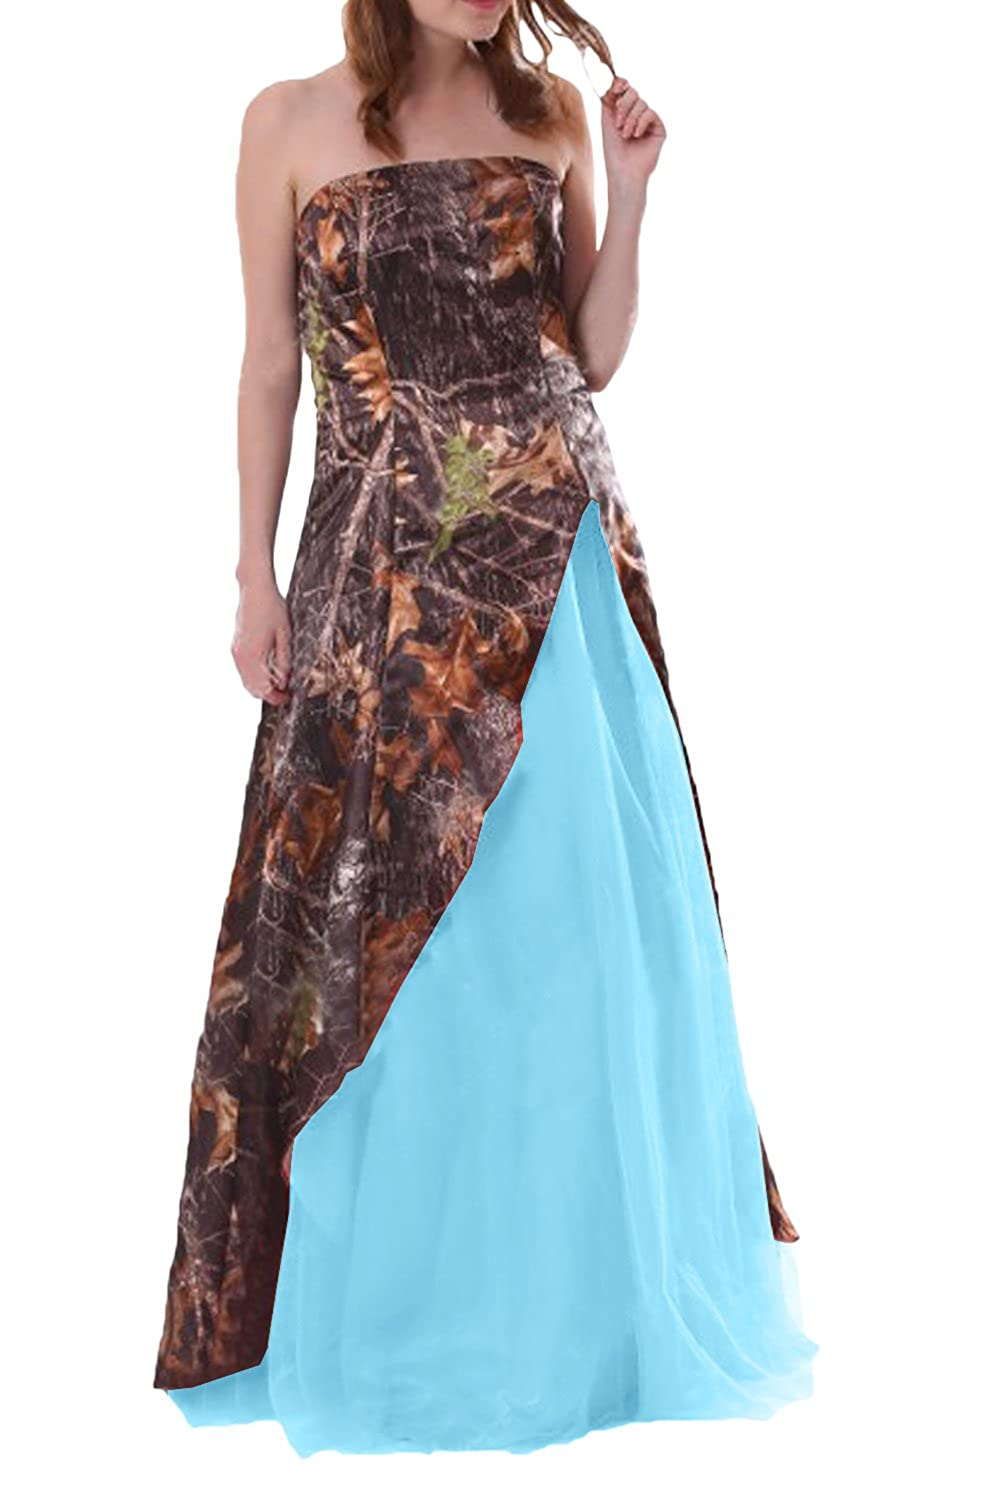 Dingzan Womans Strapless Camo And Tulle Wedding Guest Bridesmaid